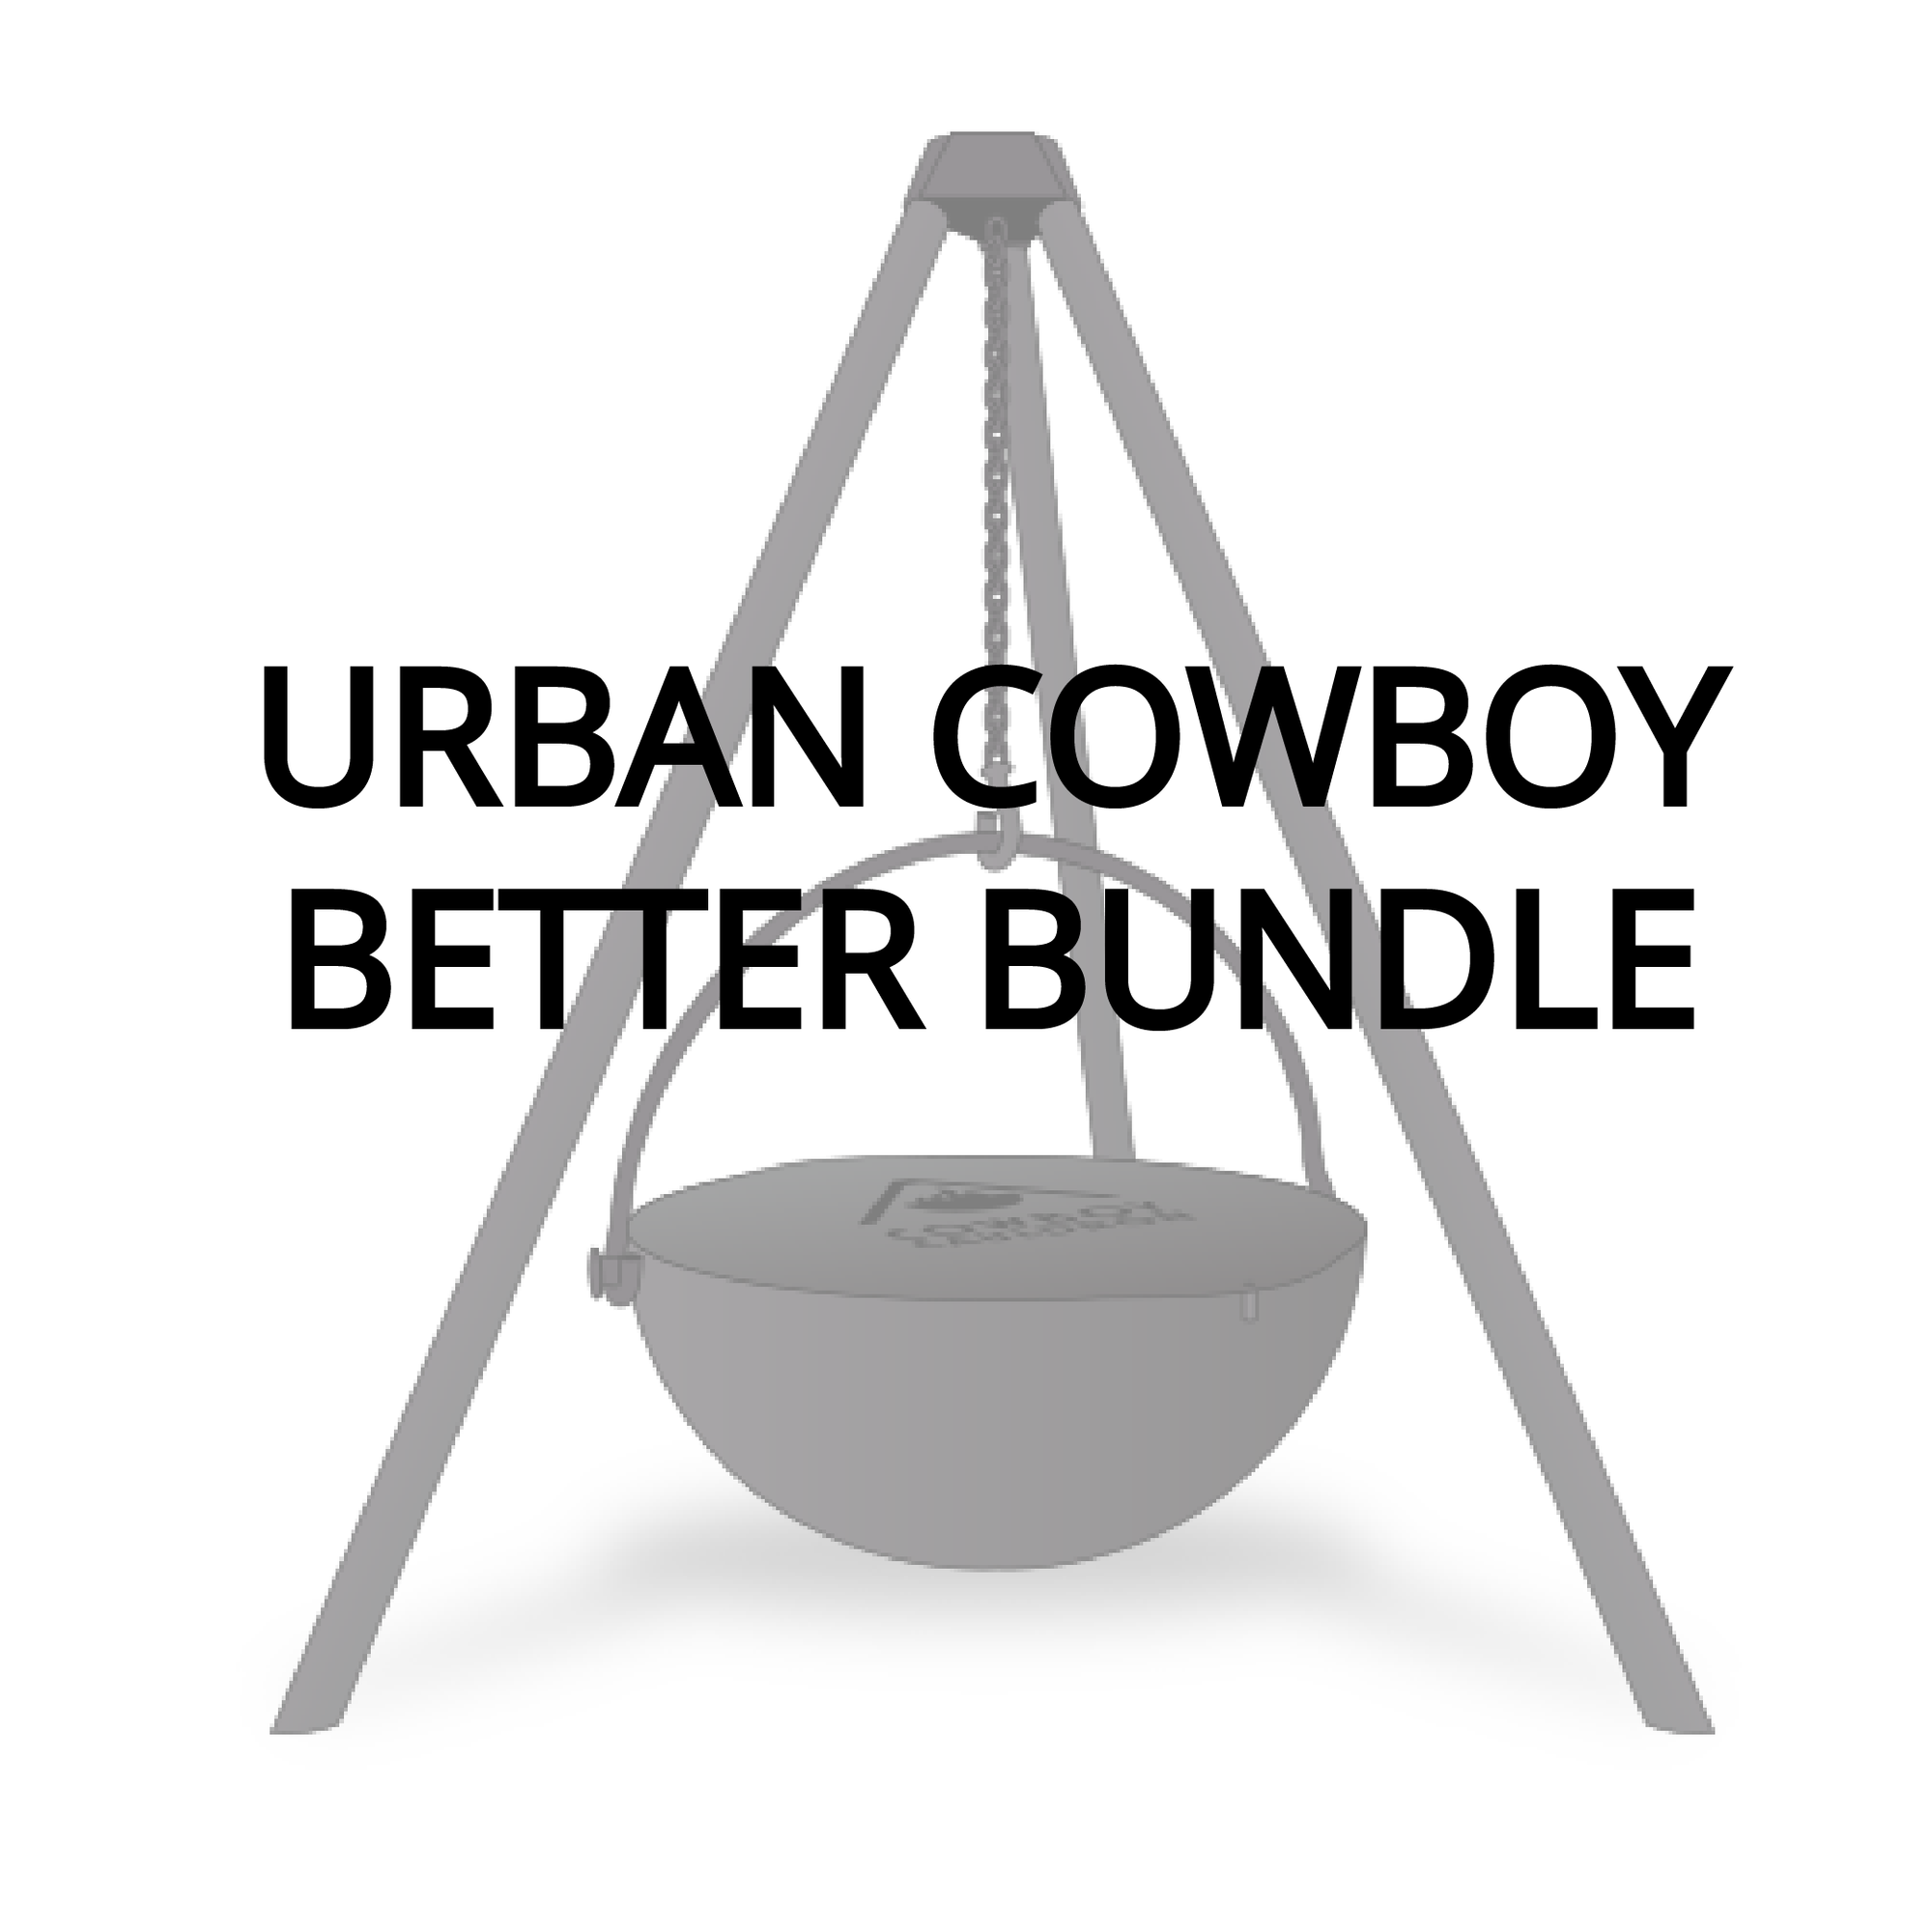 The Urban Cowboy - Better Bundle